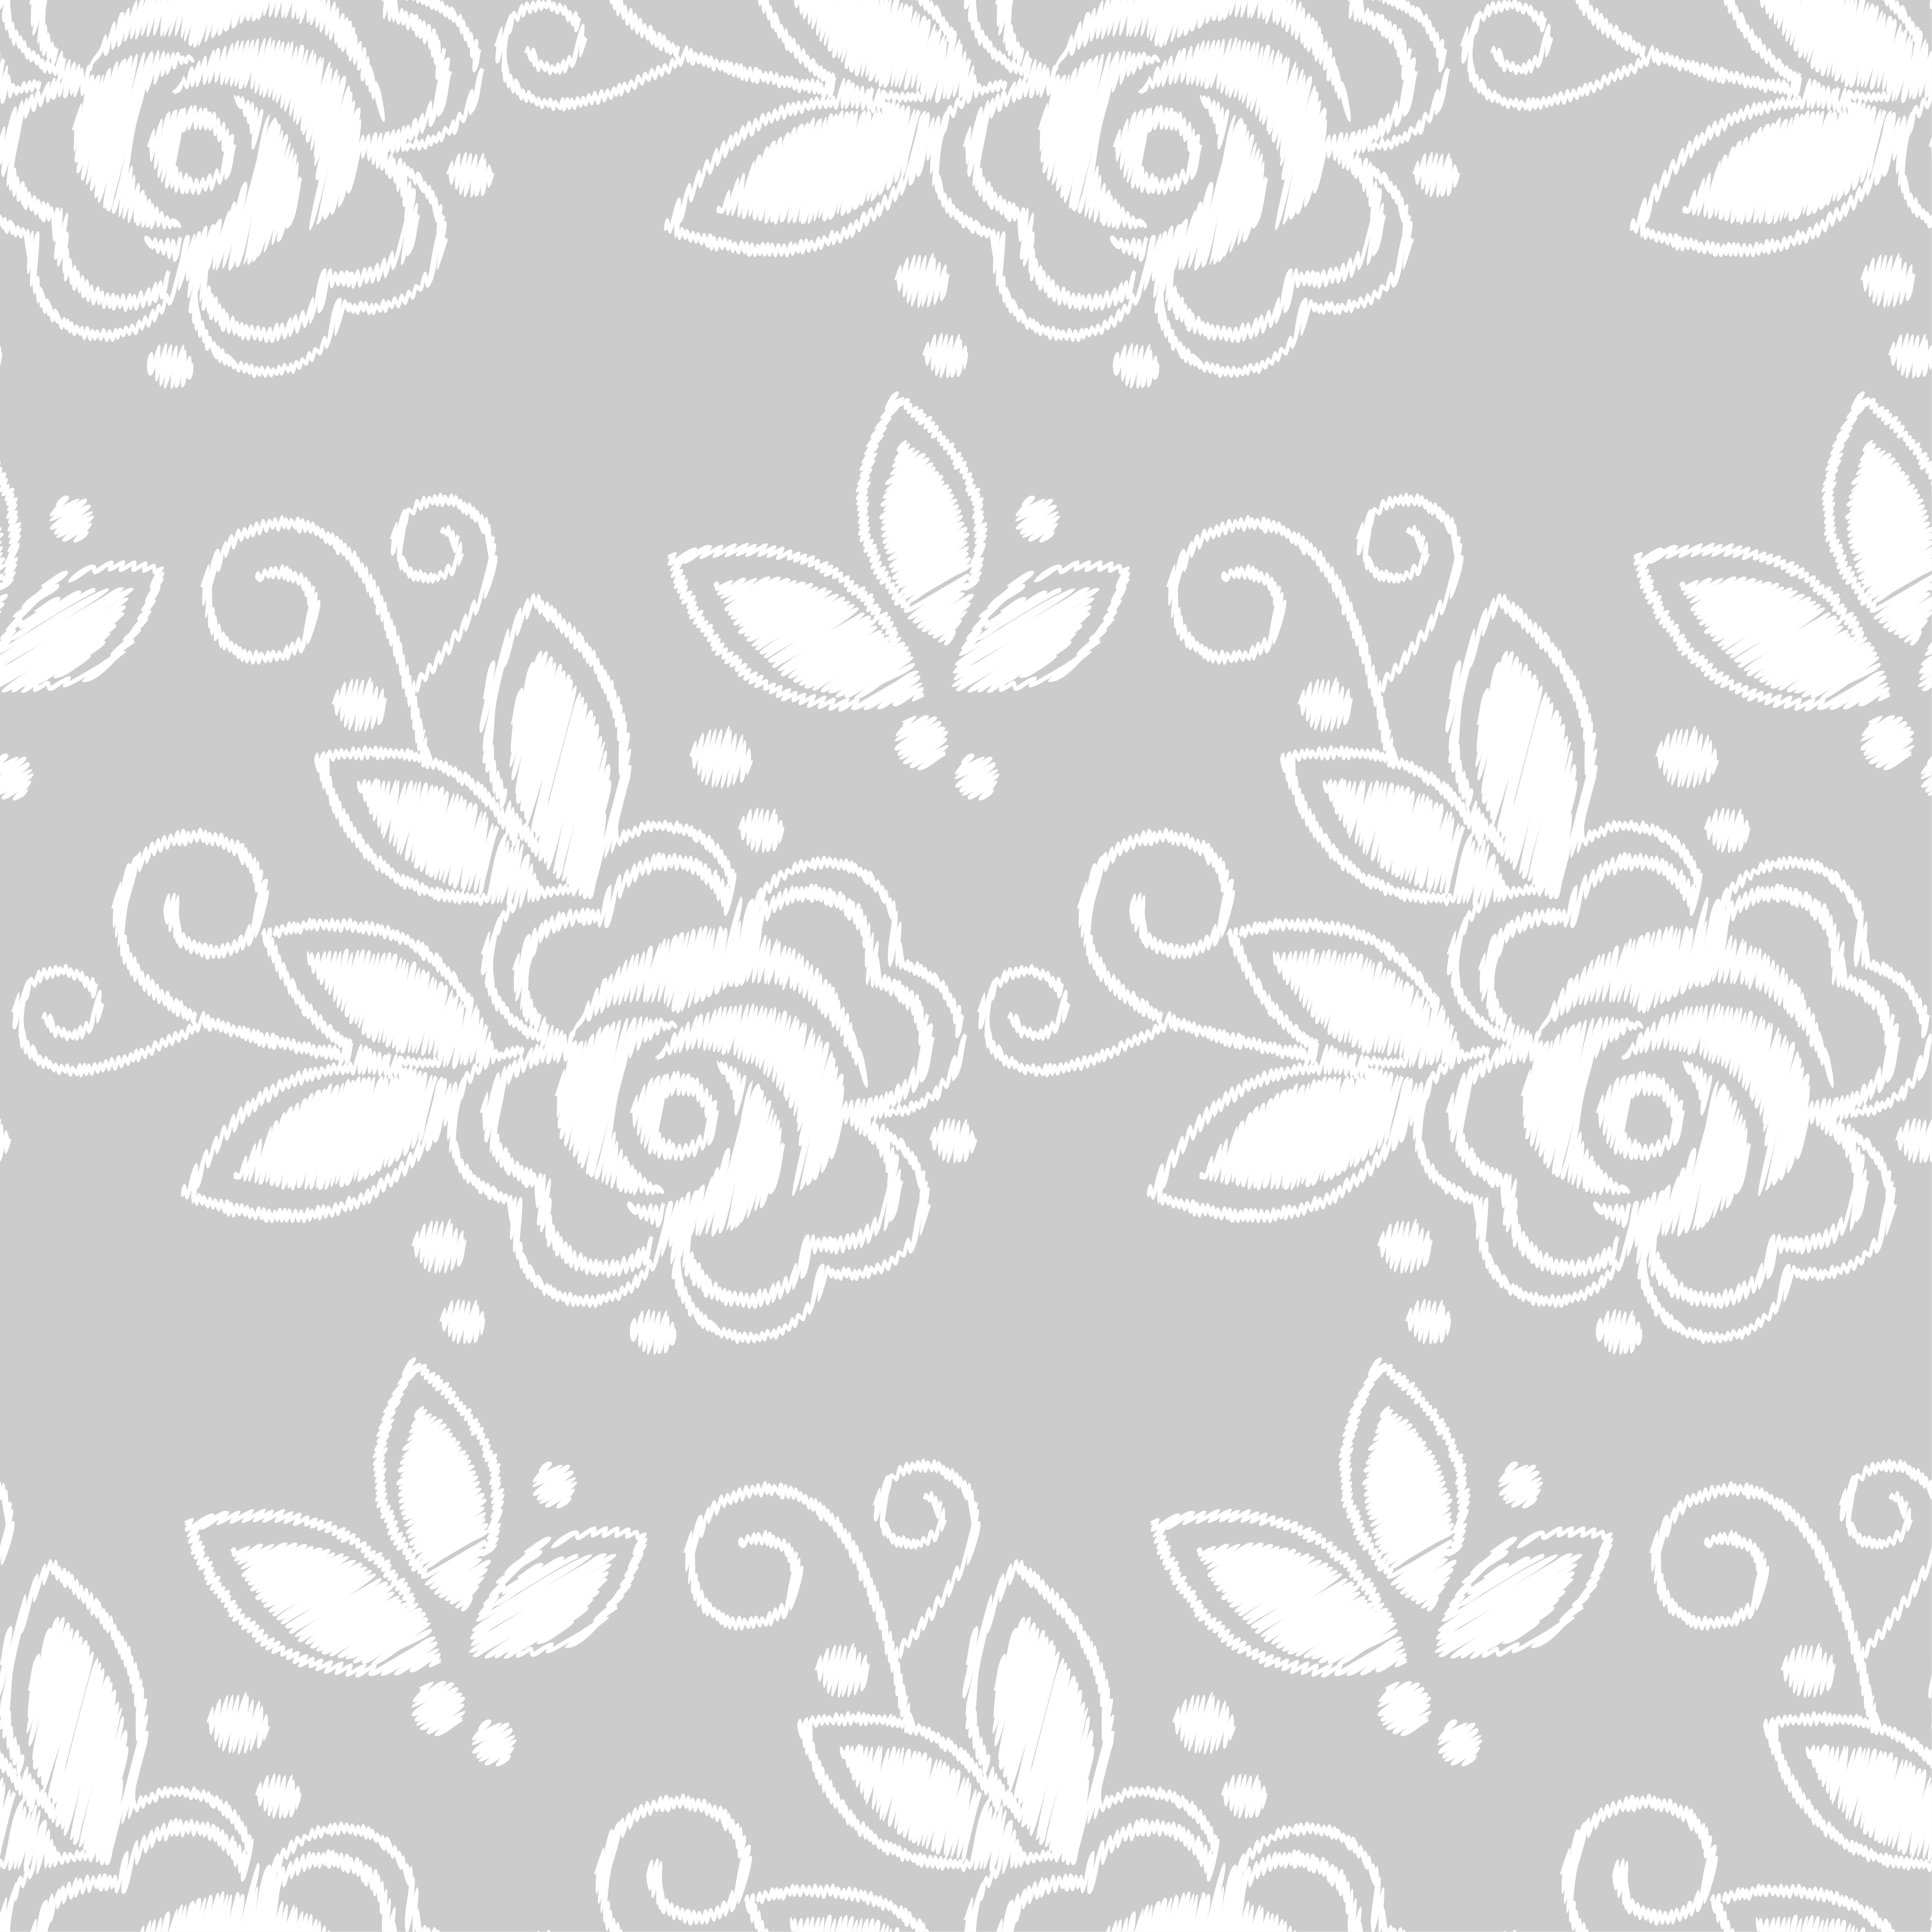 Seamless background. White embroidery o | Design Bundles